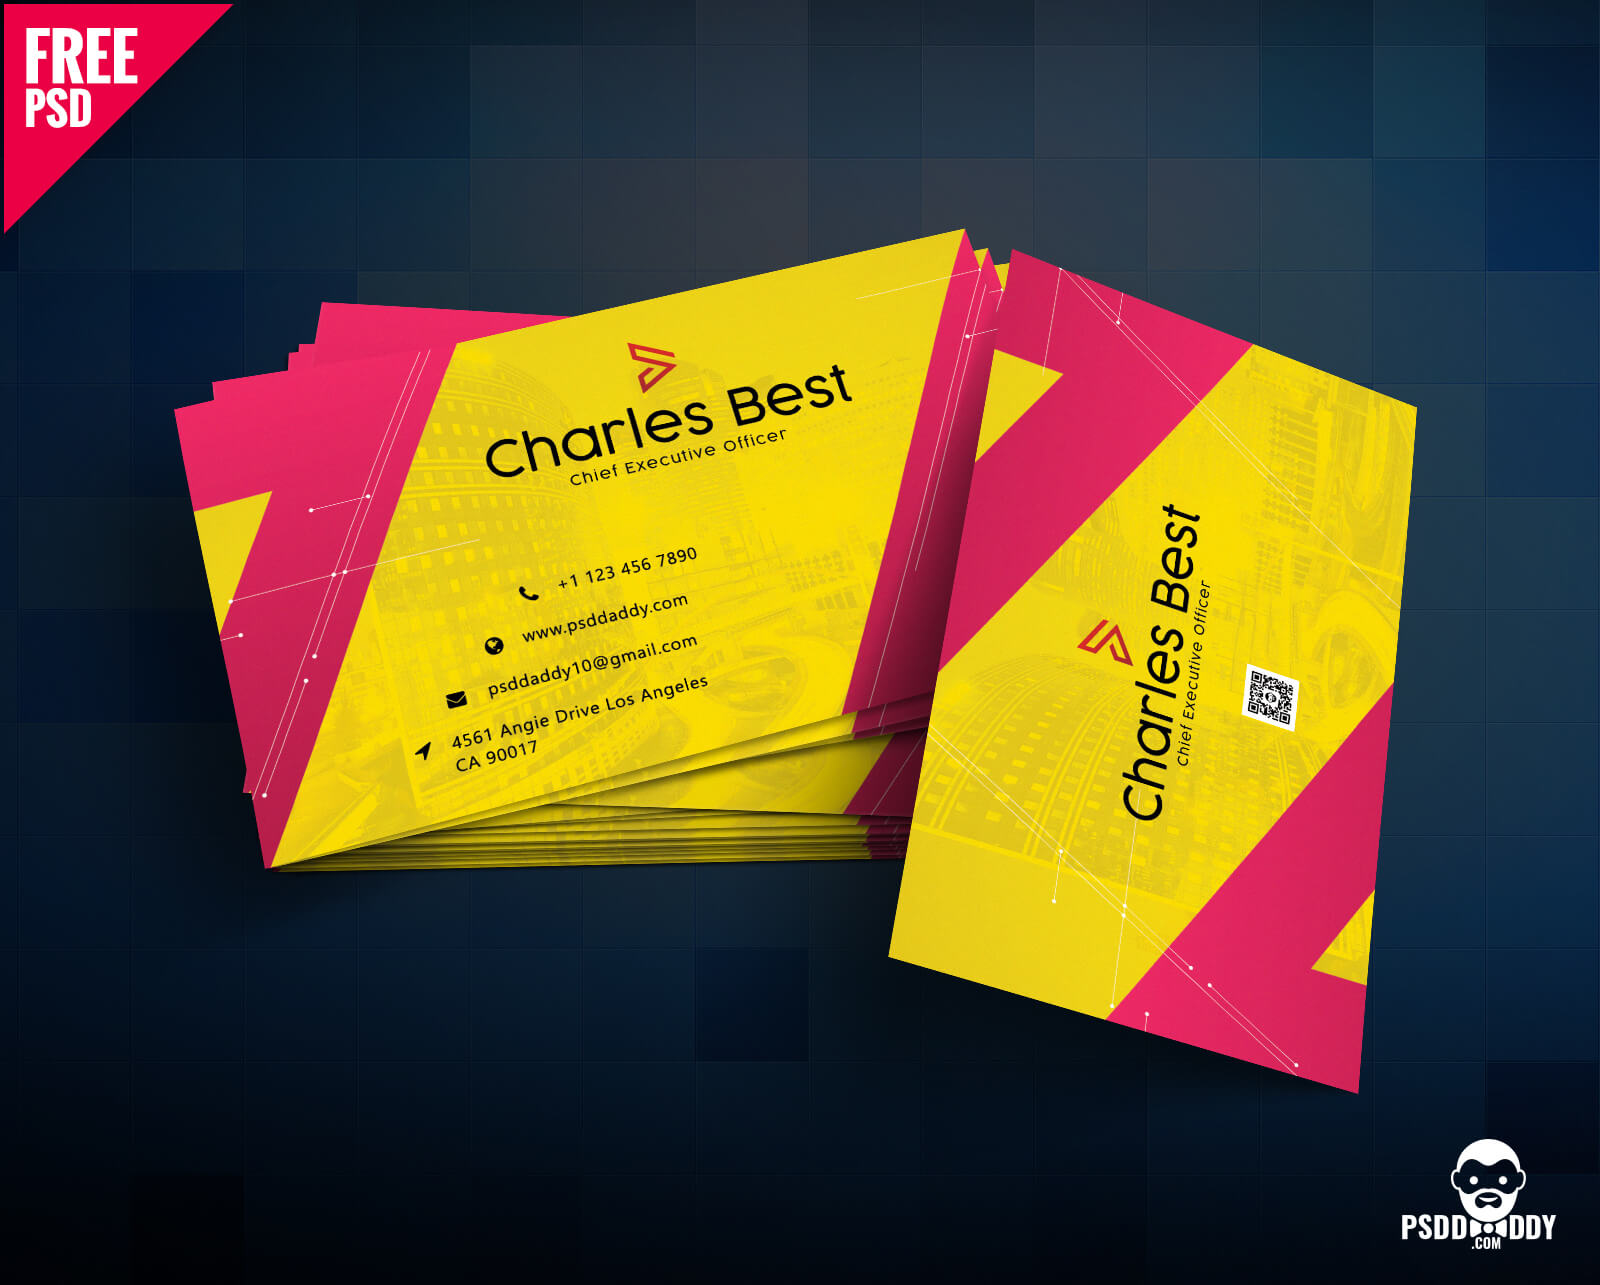 Download] Creative Business Card Free Psd | Psddaddy within Business Card Size Template Photoshop